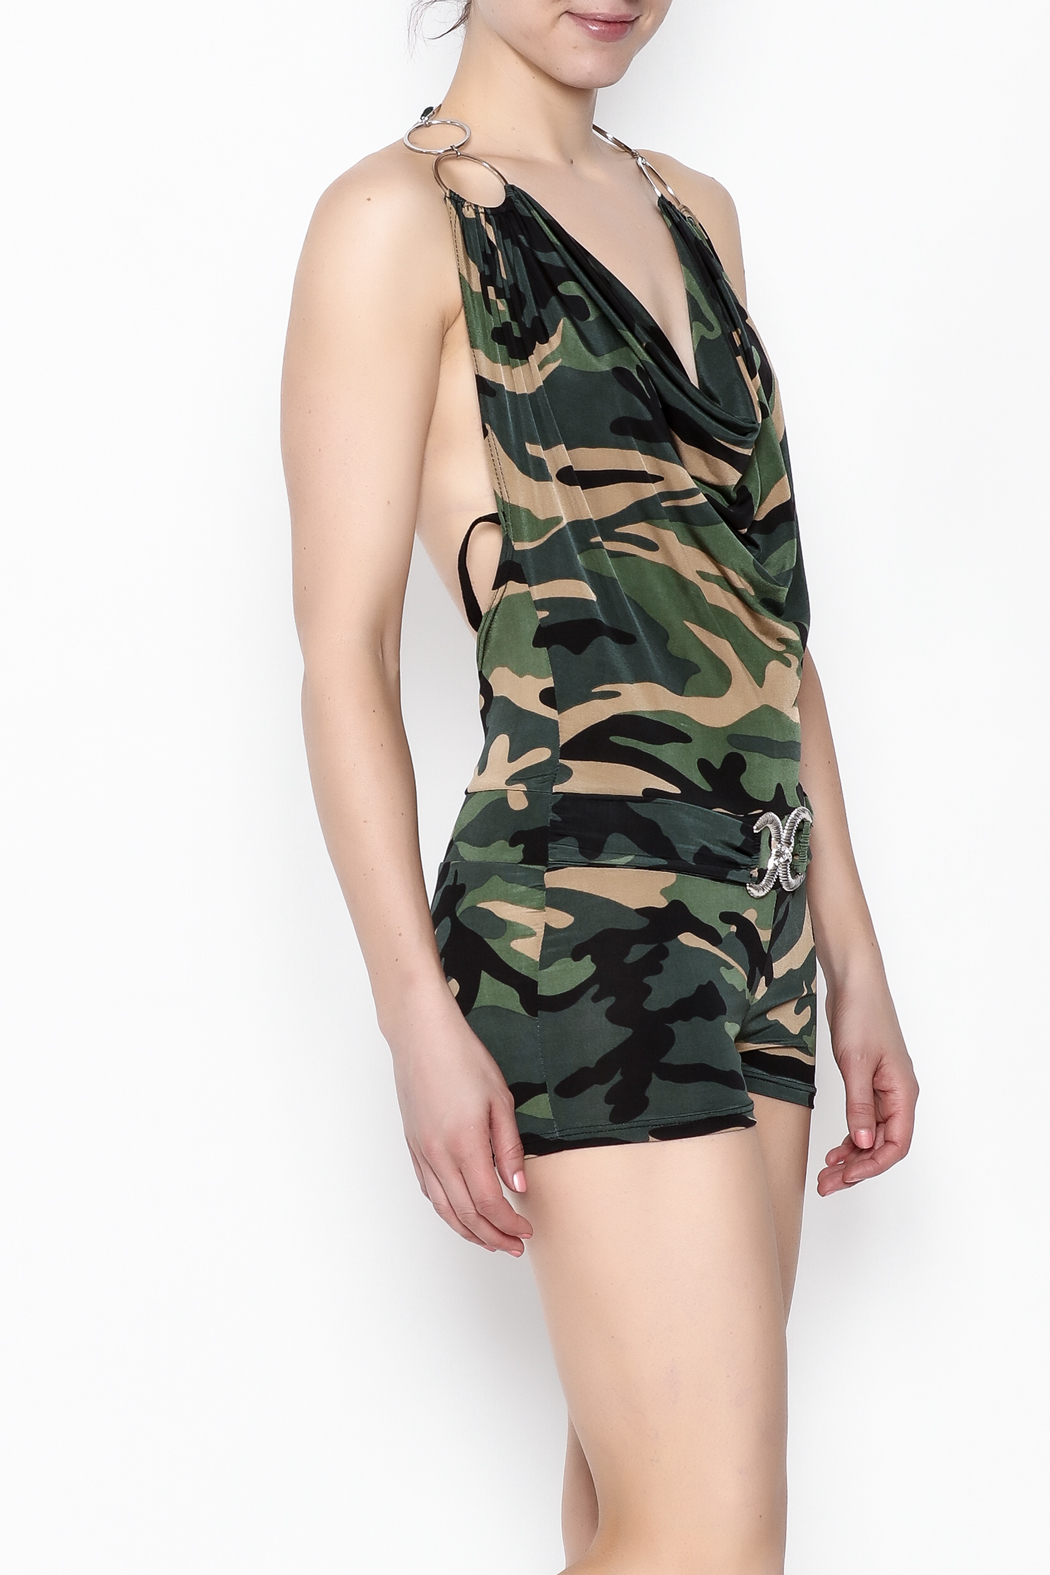 demore Camofluage Romper - Front Cropped Image